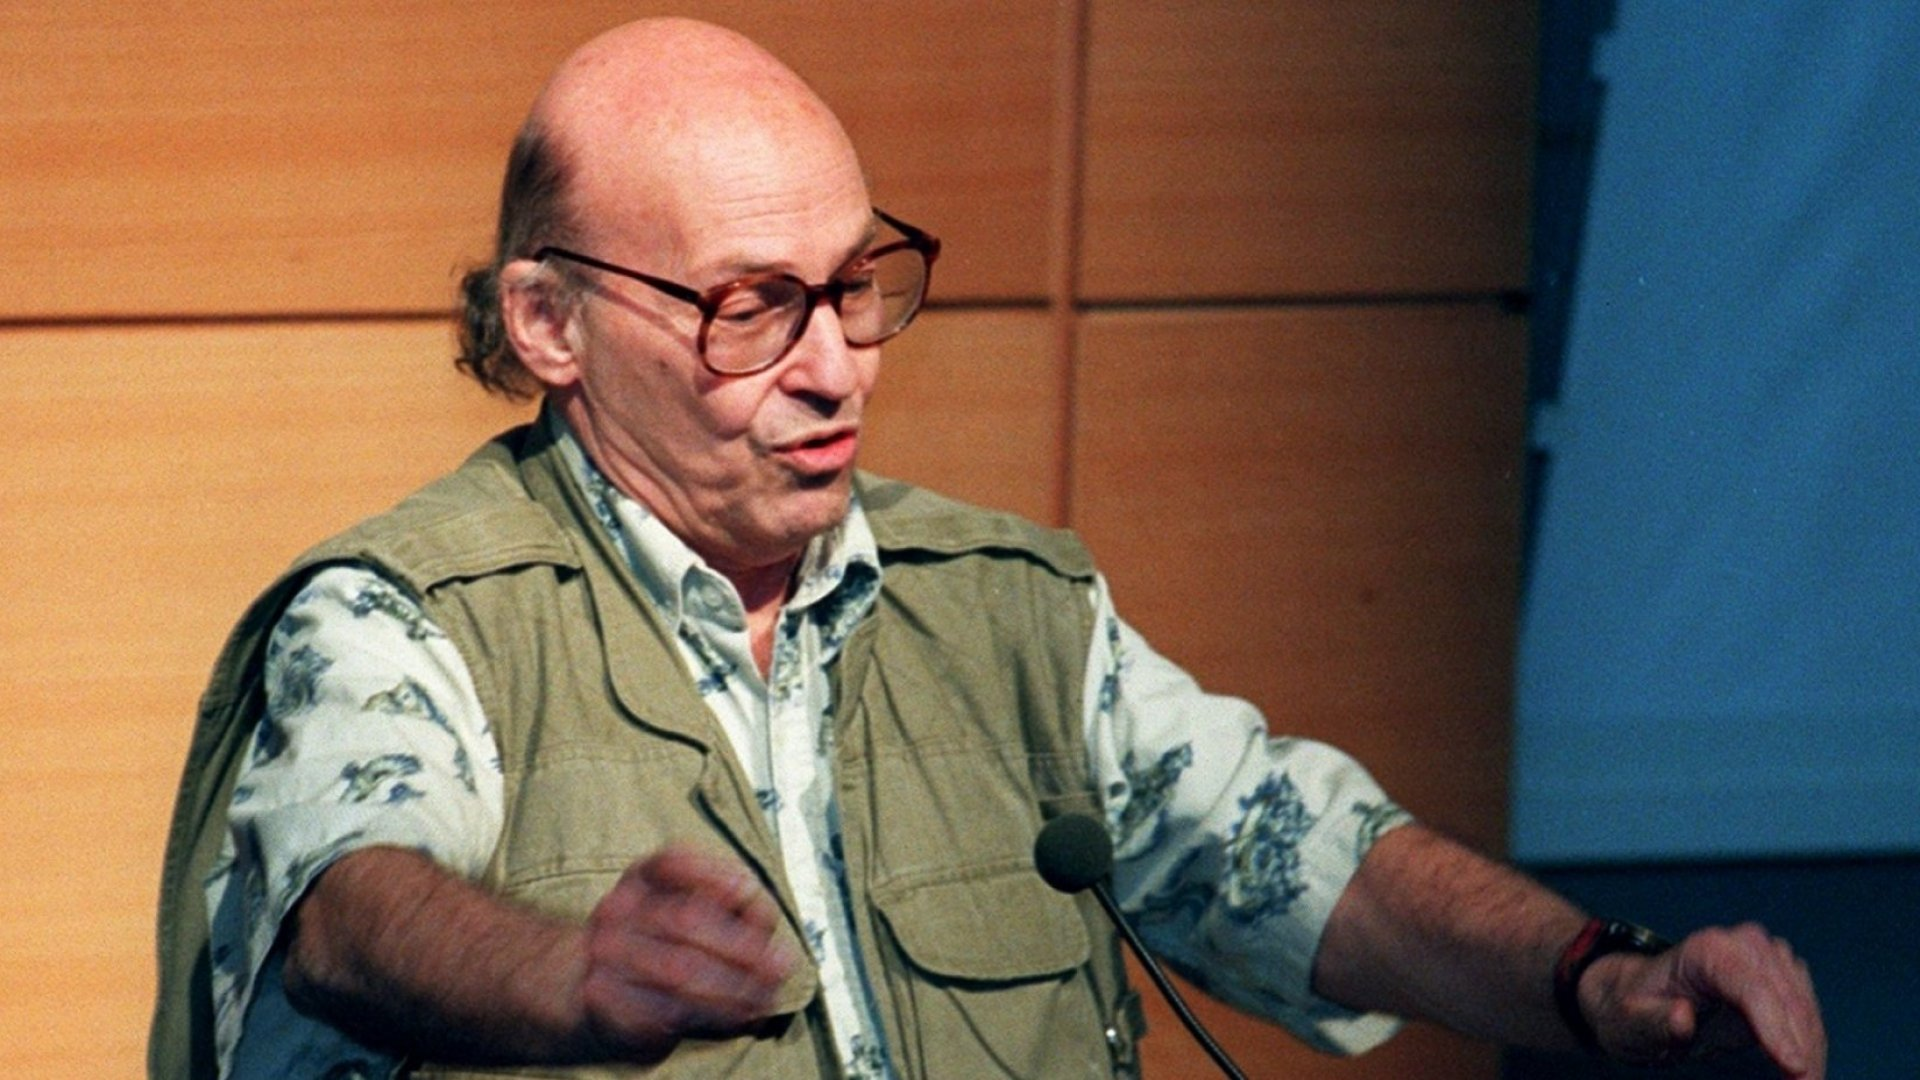 Remembering Marvin Minsky, a Founding Father of Artificial Intelligence